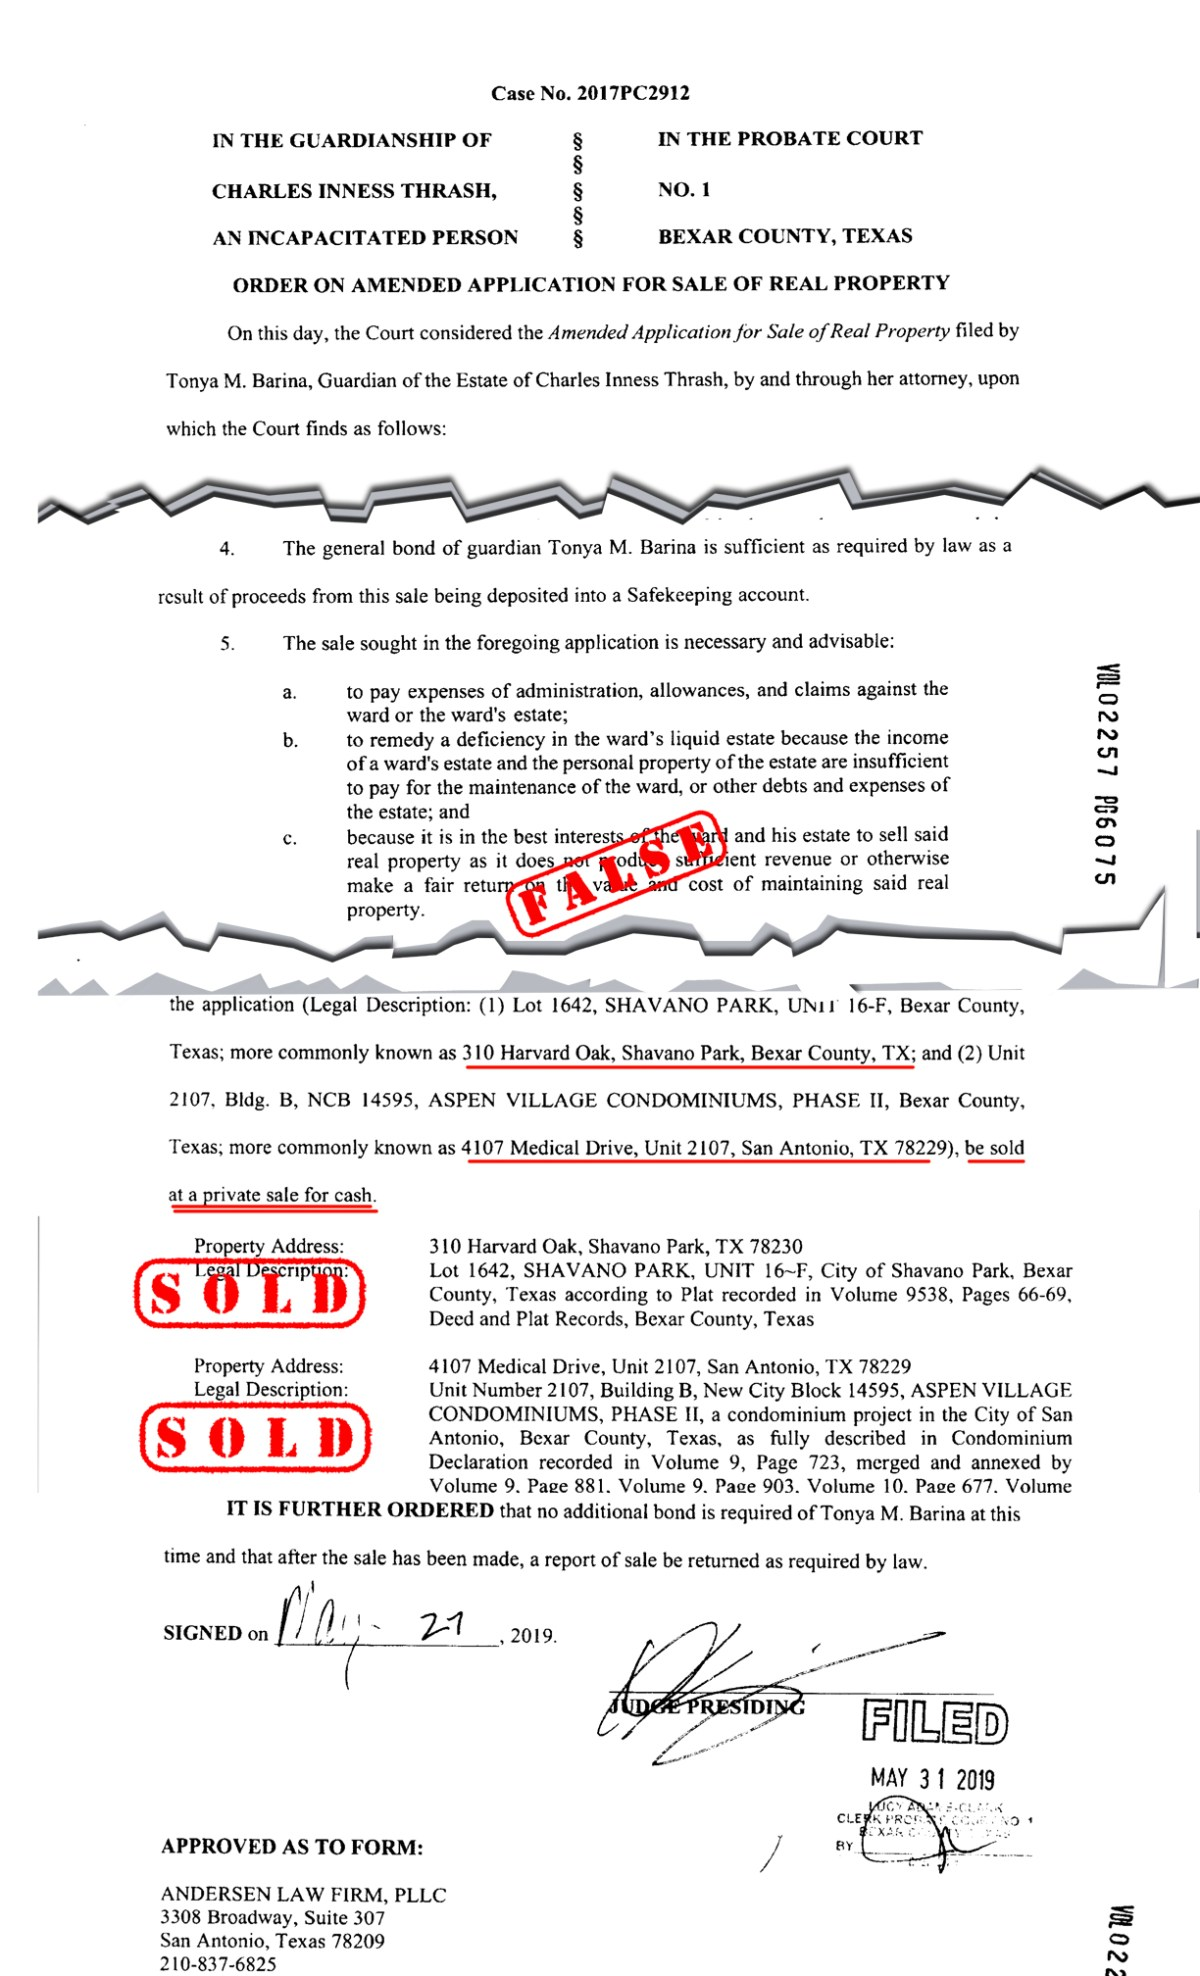 May 27, 2019: Probate Judge Oscar Kazen orders Charlie Thrash's primary & secondary residences sold, in a private sale, for cash. You'd never know the name of the Judge who signed this Order, unless you looked at the court docket and cross referenced the date of the Order, with the name of the presiding judge on that date. Does this mean that Judge Oscar Kazen is so ashamed of his adjudicated Orders that he tries to hide behind anonymity in selling off Charlie Thrash's valuable paid-for residences, that could have been used to house Charlie, instead of making Charlie pay for an assisted living facility that is probably owned by the very people involved in parts of this 'racket'.